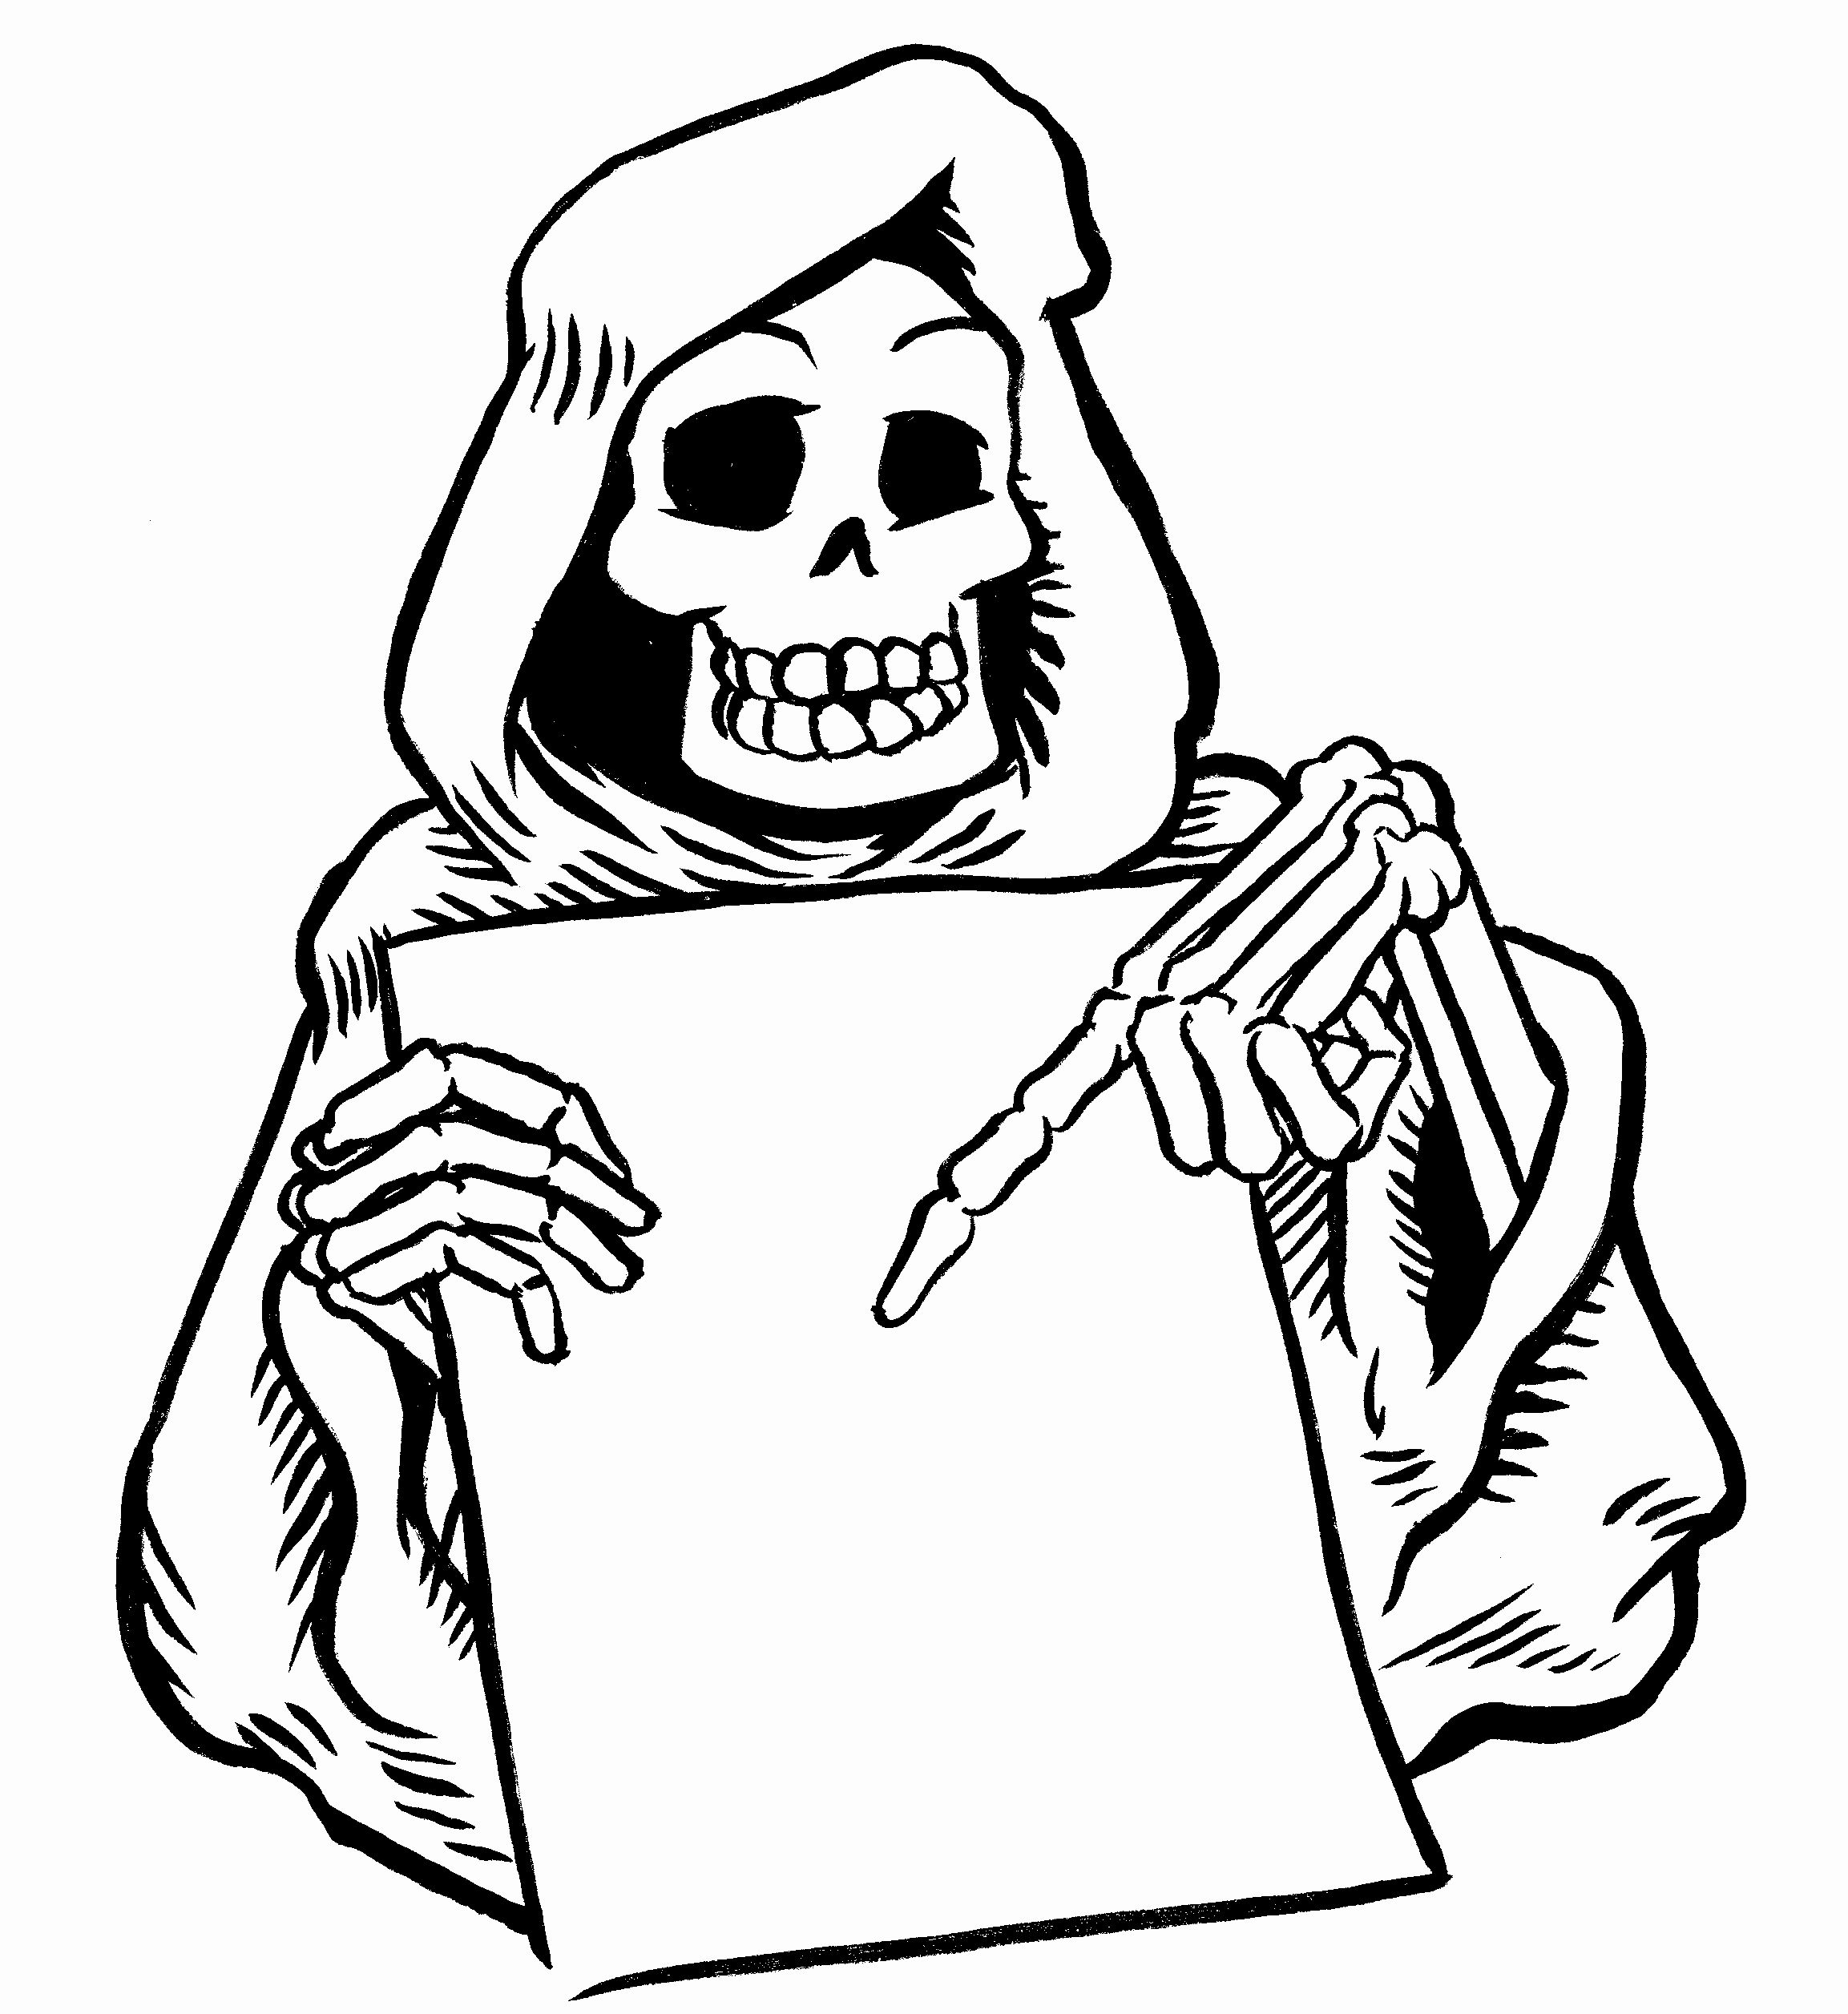 Grim Reaper Coloring Pictures Inspirational Of Walking Dead Coloring Pages 2 Sabadaphnecottage Coloriage Halloween Coloriage Halloween